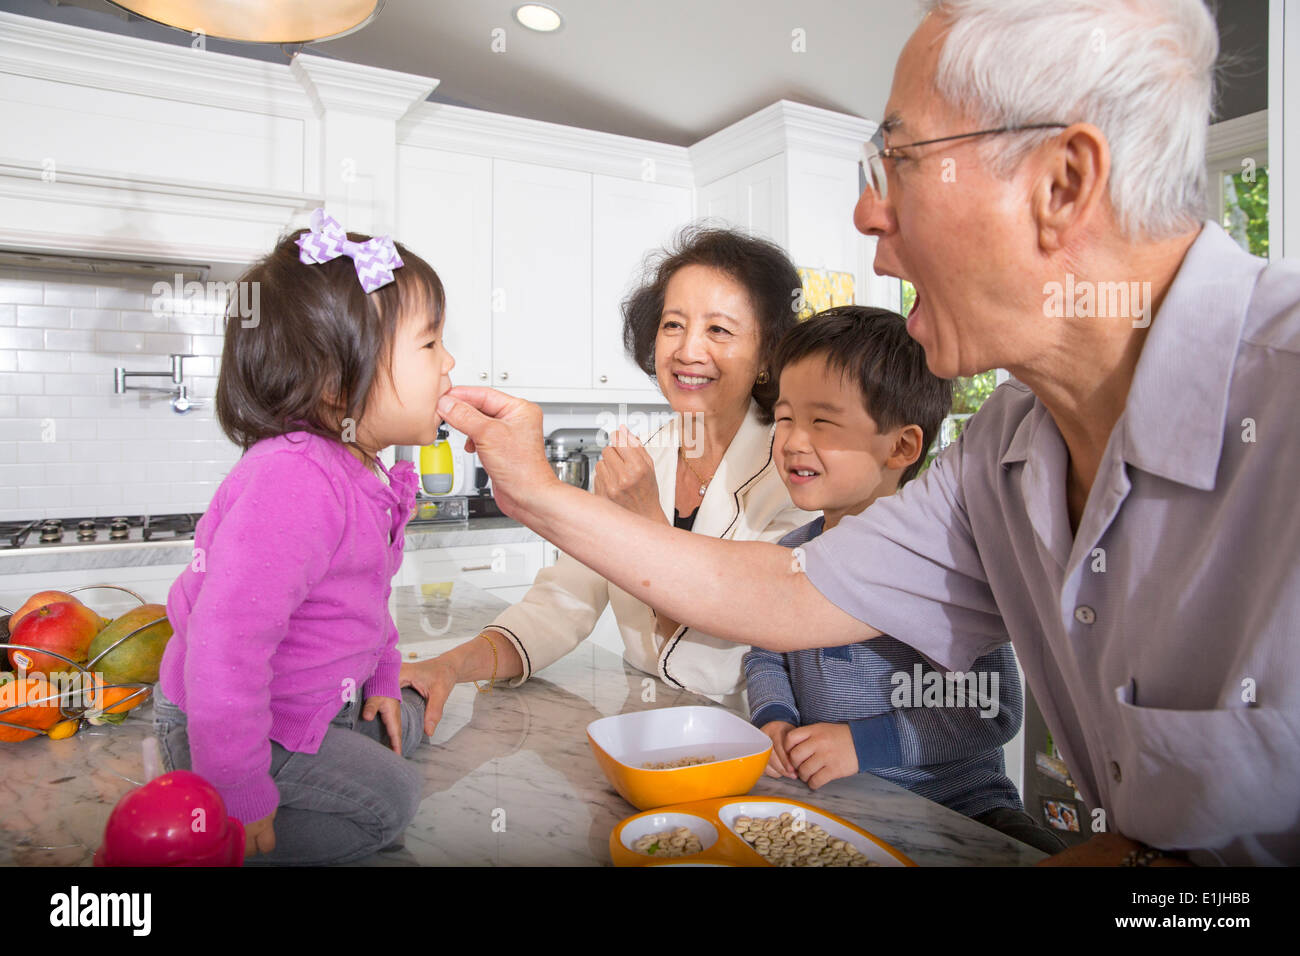 Grandfather feeding snack to toddler granddaughter in kitchen - Stock Image